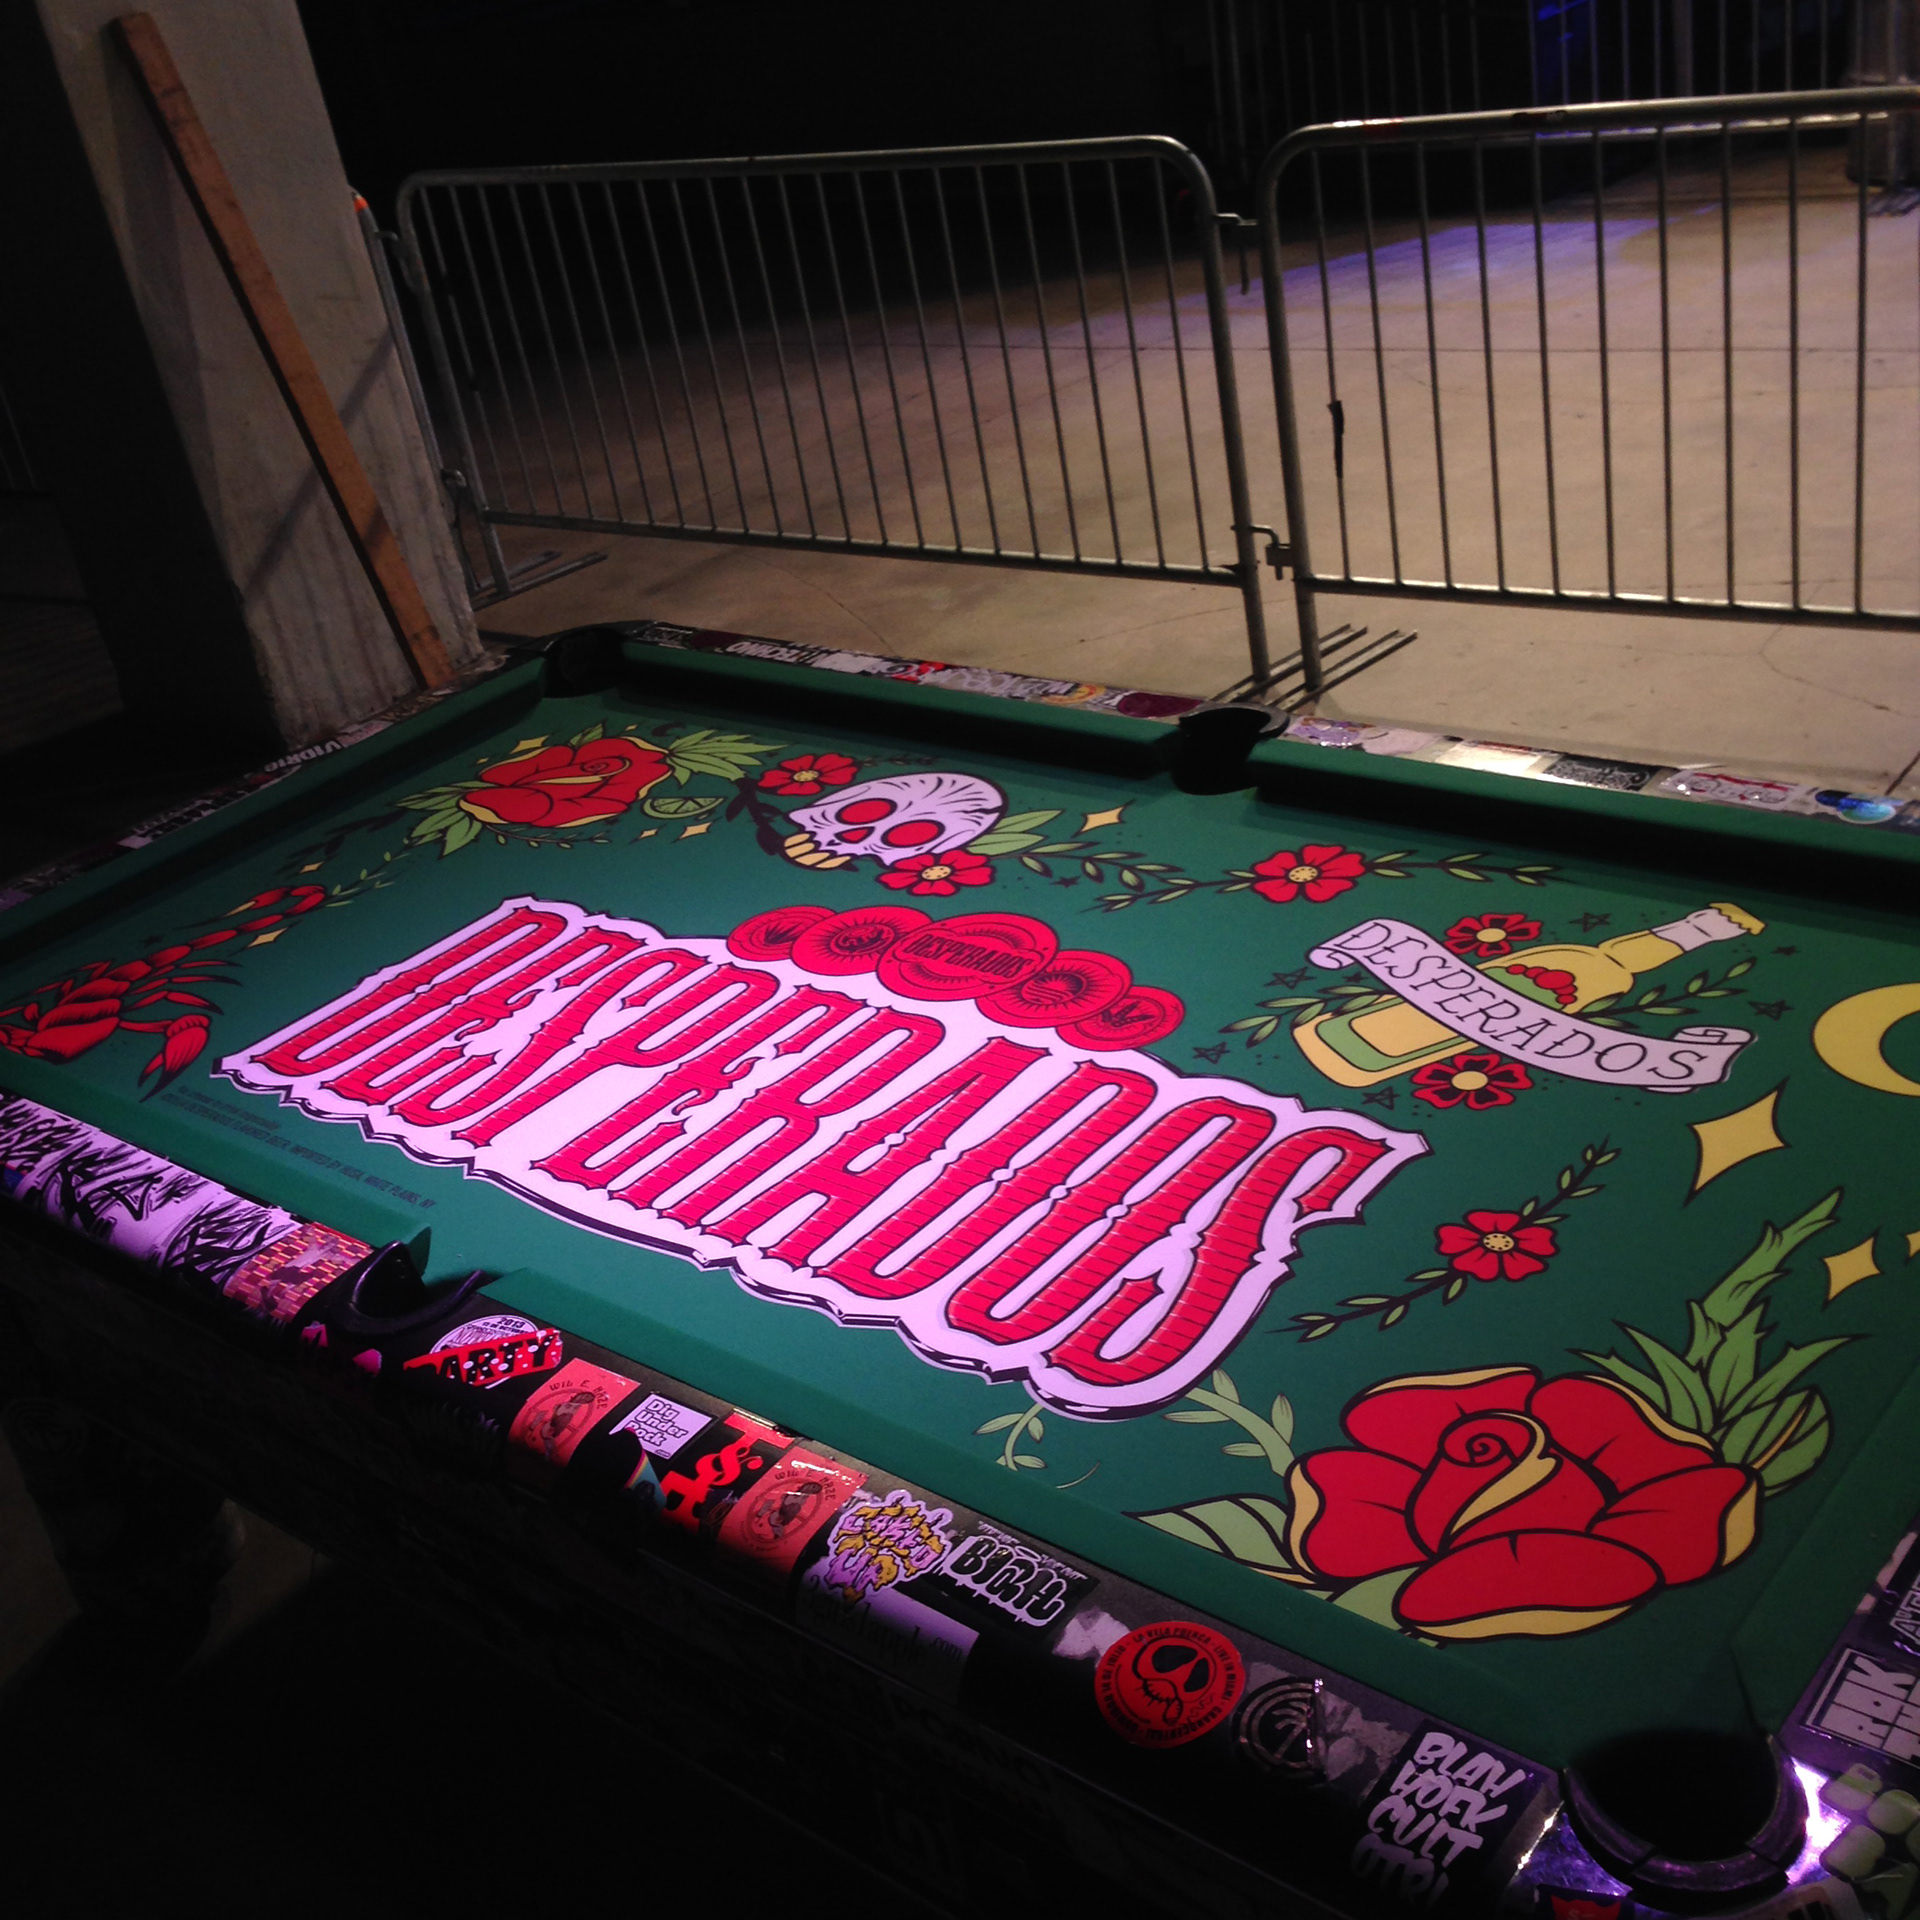 Custom Design Pools inground swimming pools far hills nj inground swimming pool awarded for design Custom Designed Pool Table Felt With American Traditional Tattoo Style Art Using The Brands Attributes The Table Was Installed At Grand Central In